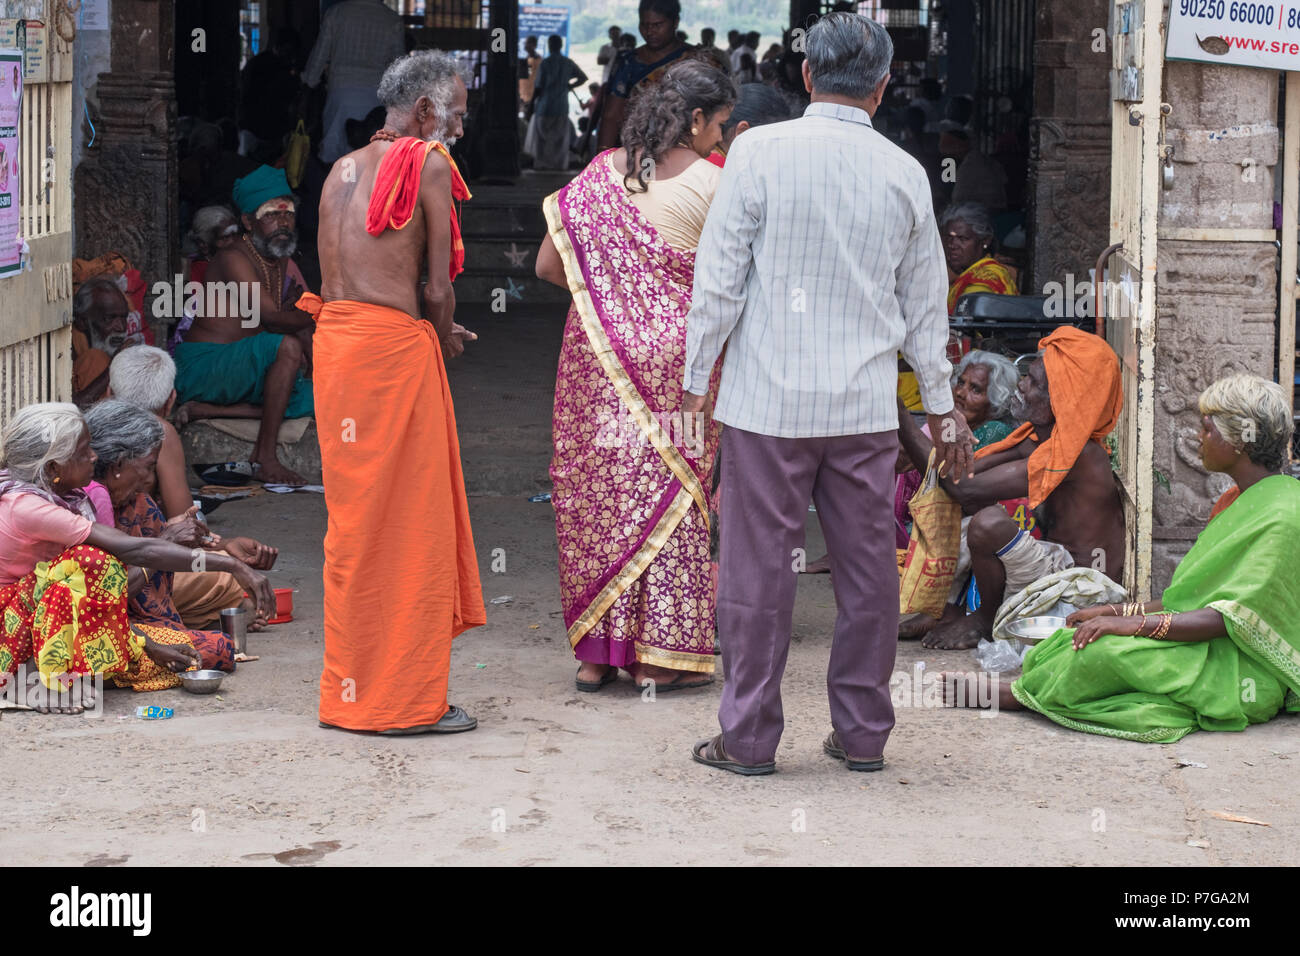 Trichy, India - March 14, 2018: Beggars lining the entrance to the Amma Mandapa ghats on the Kaveri river,  a highly auspicious place for Hindus - Stock Image